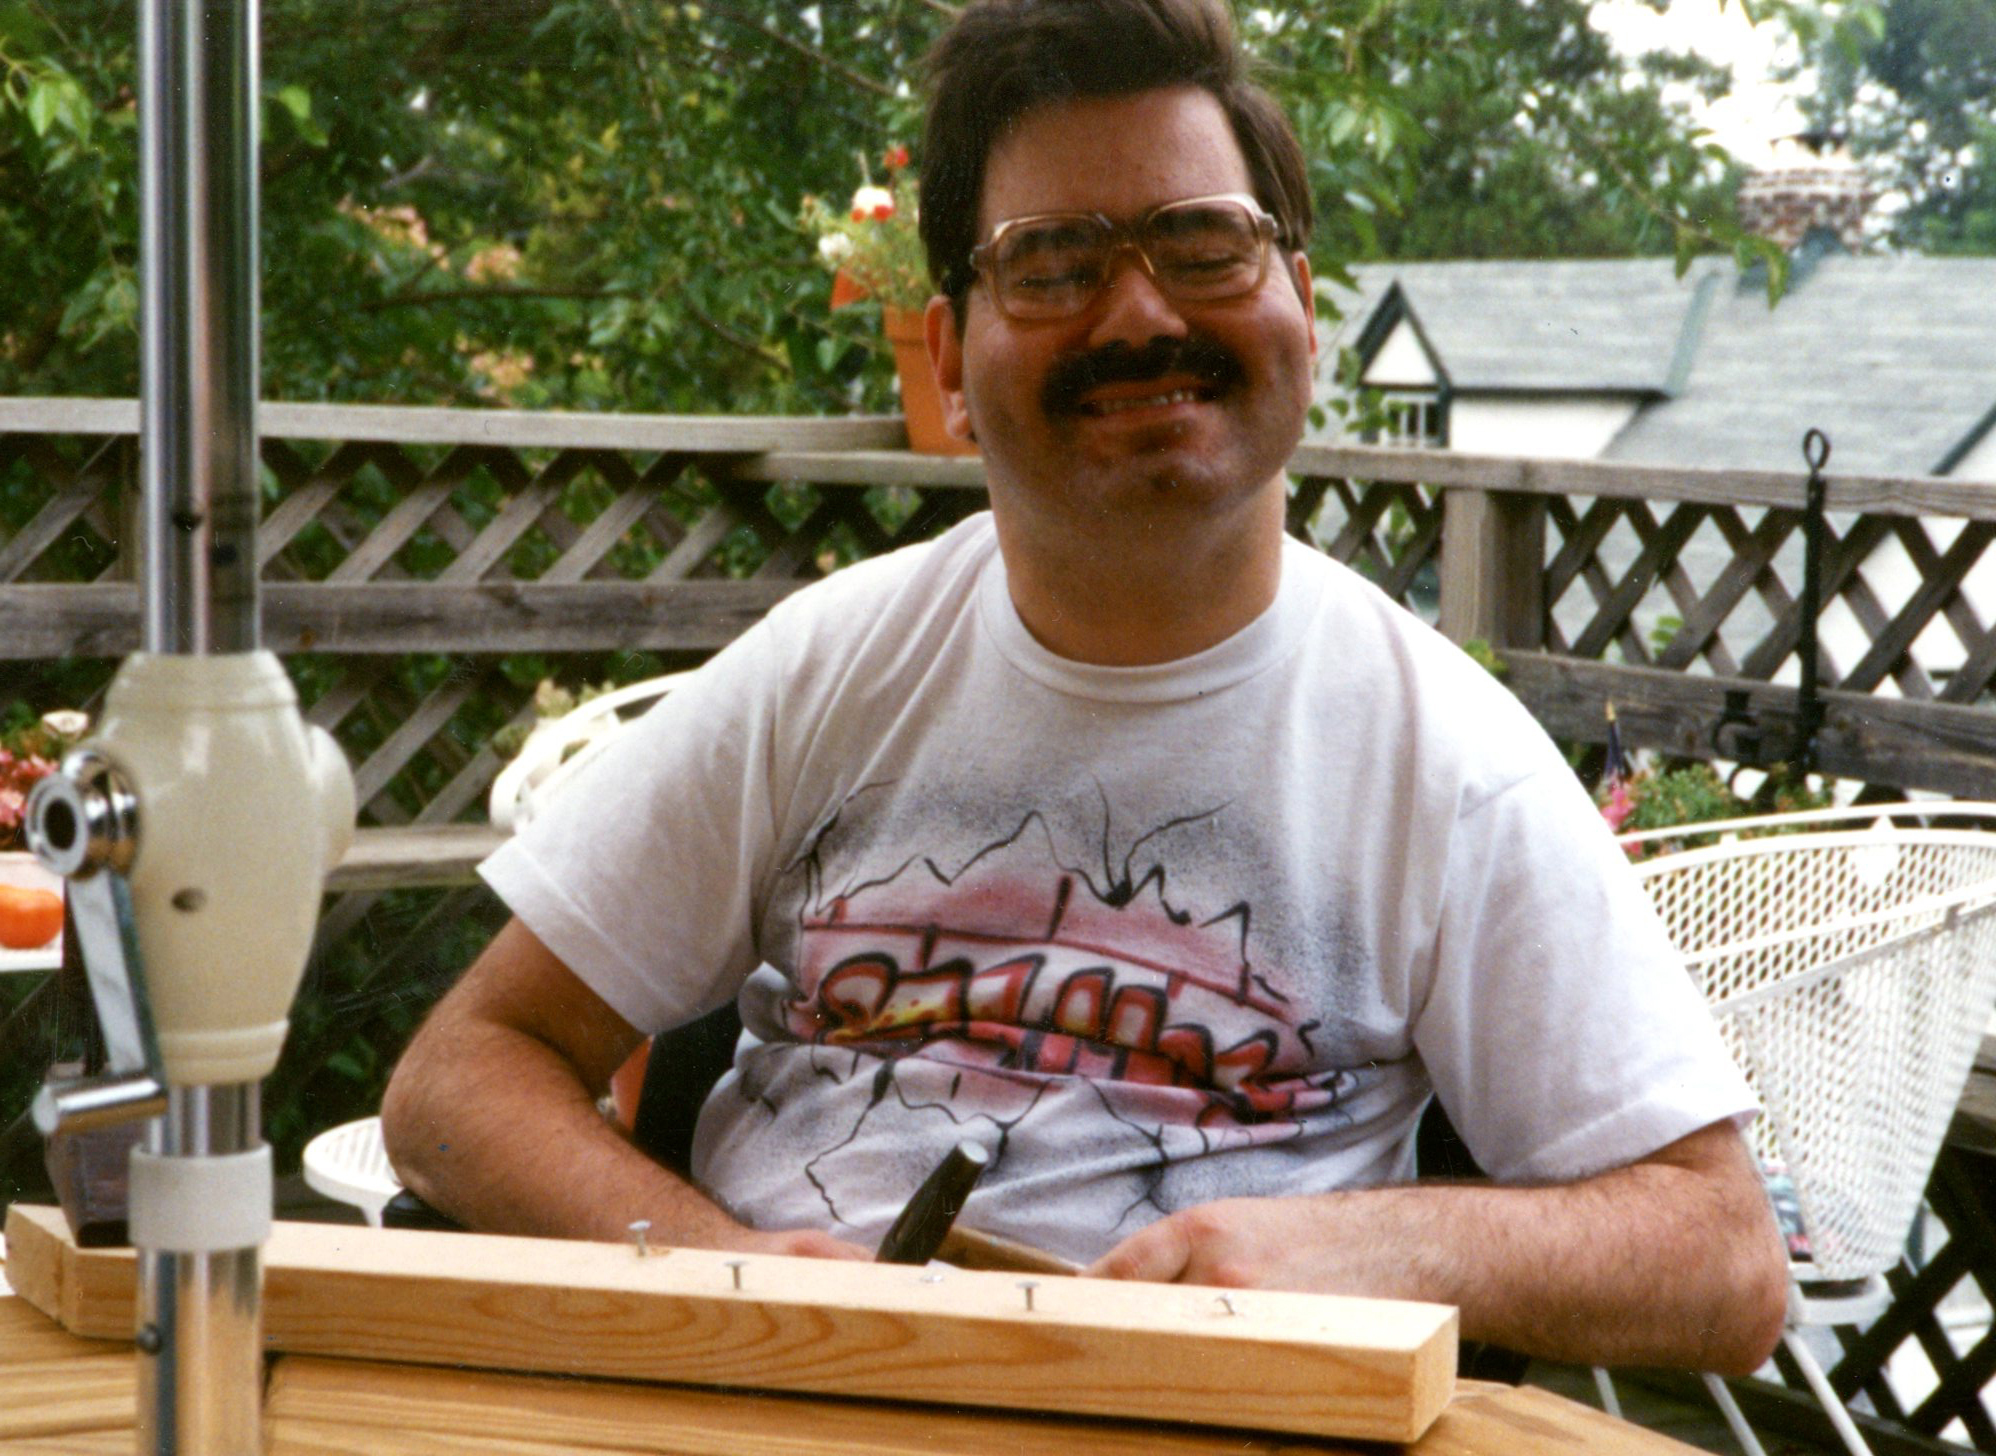 Vincent McNamara on the deck of his sister Maureen´s house in Erdenheim in 1998, clearly pleased with the hammering he did on the board in front of him.